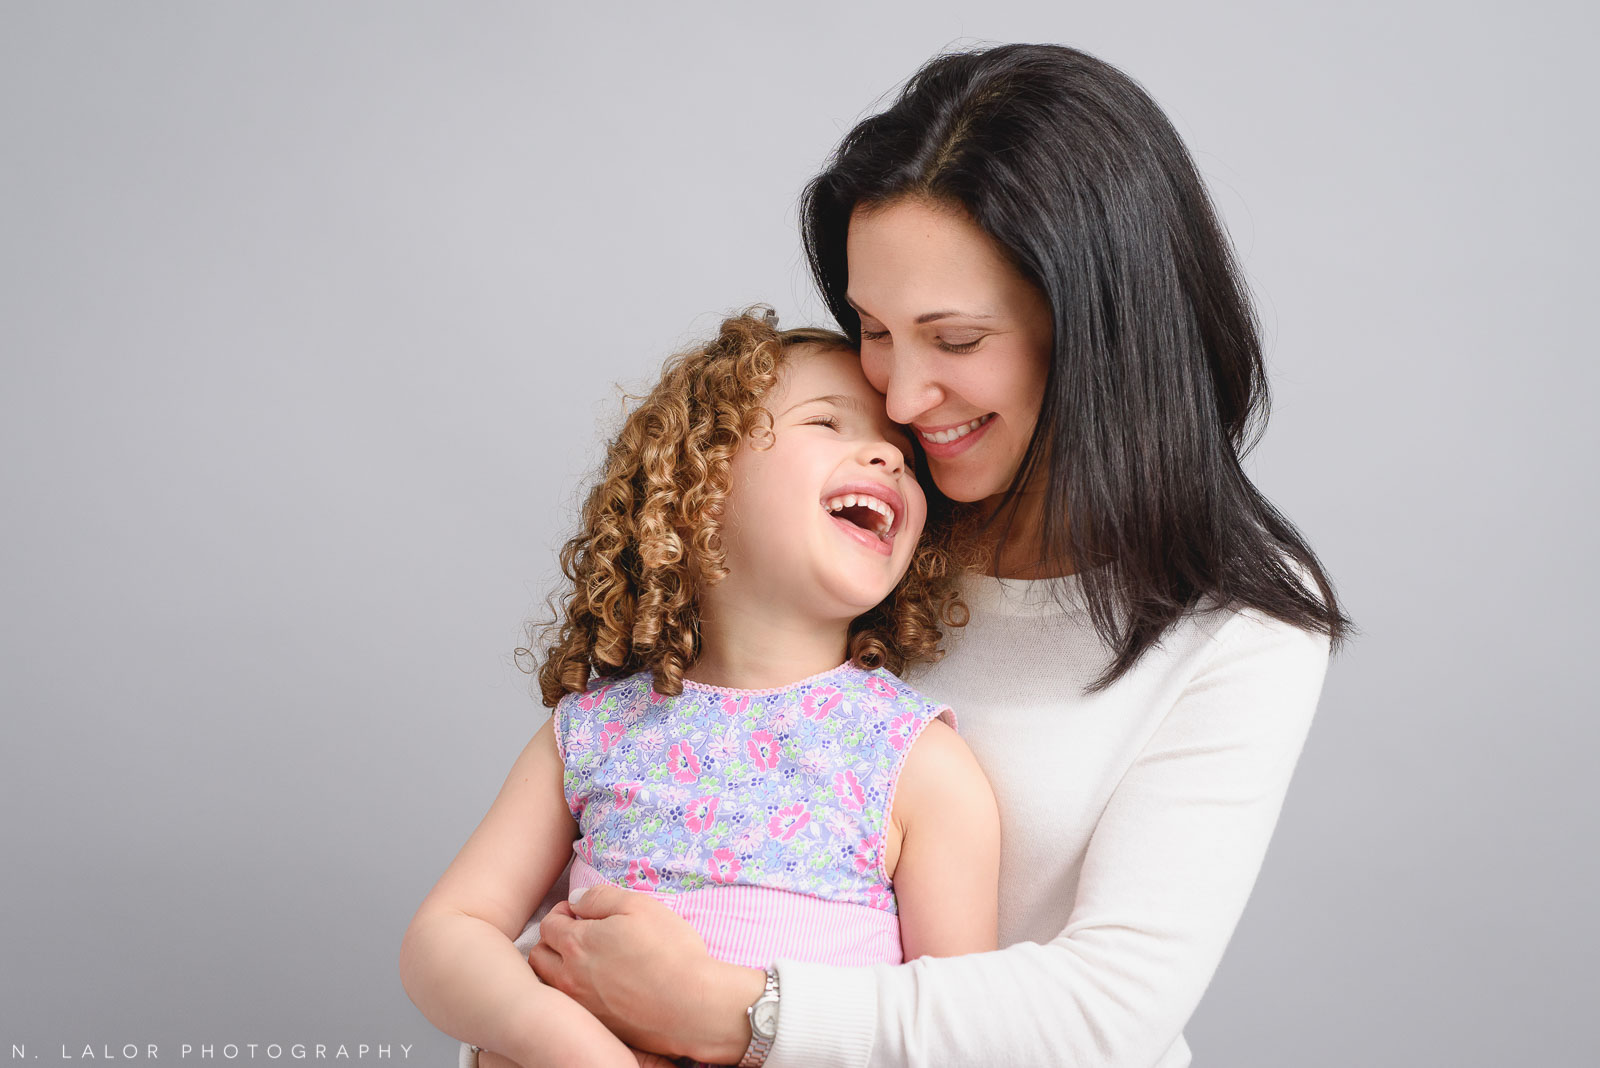 Mom and daughter laughing together. Studio family photo session with N. Lalor Photography in Greenwich, Connecticut.